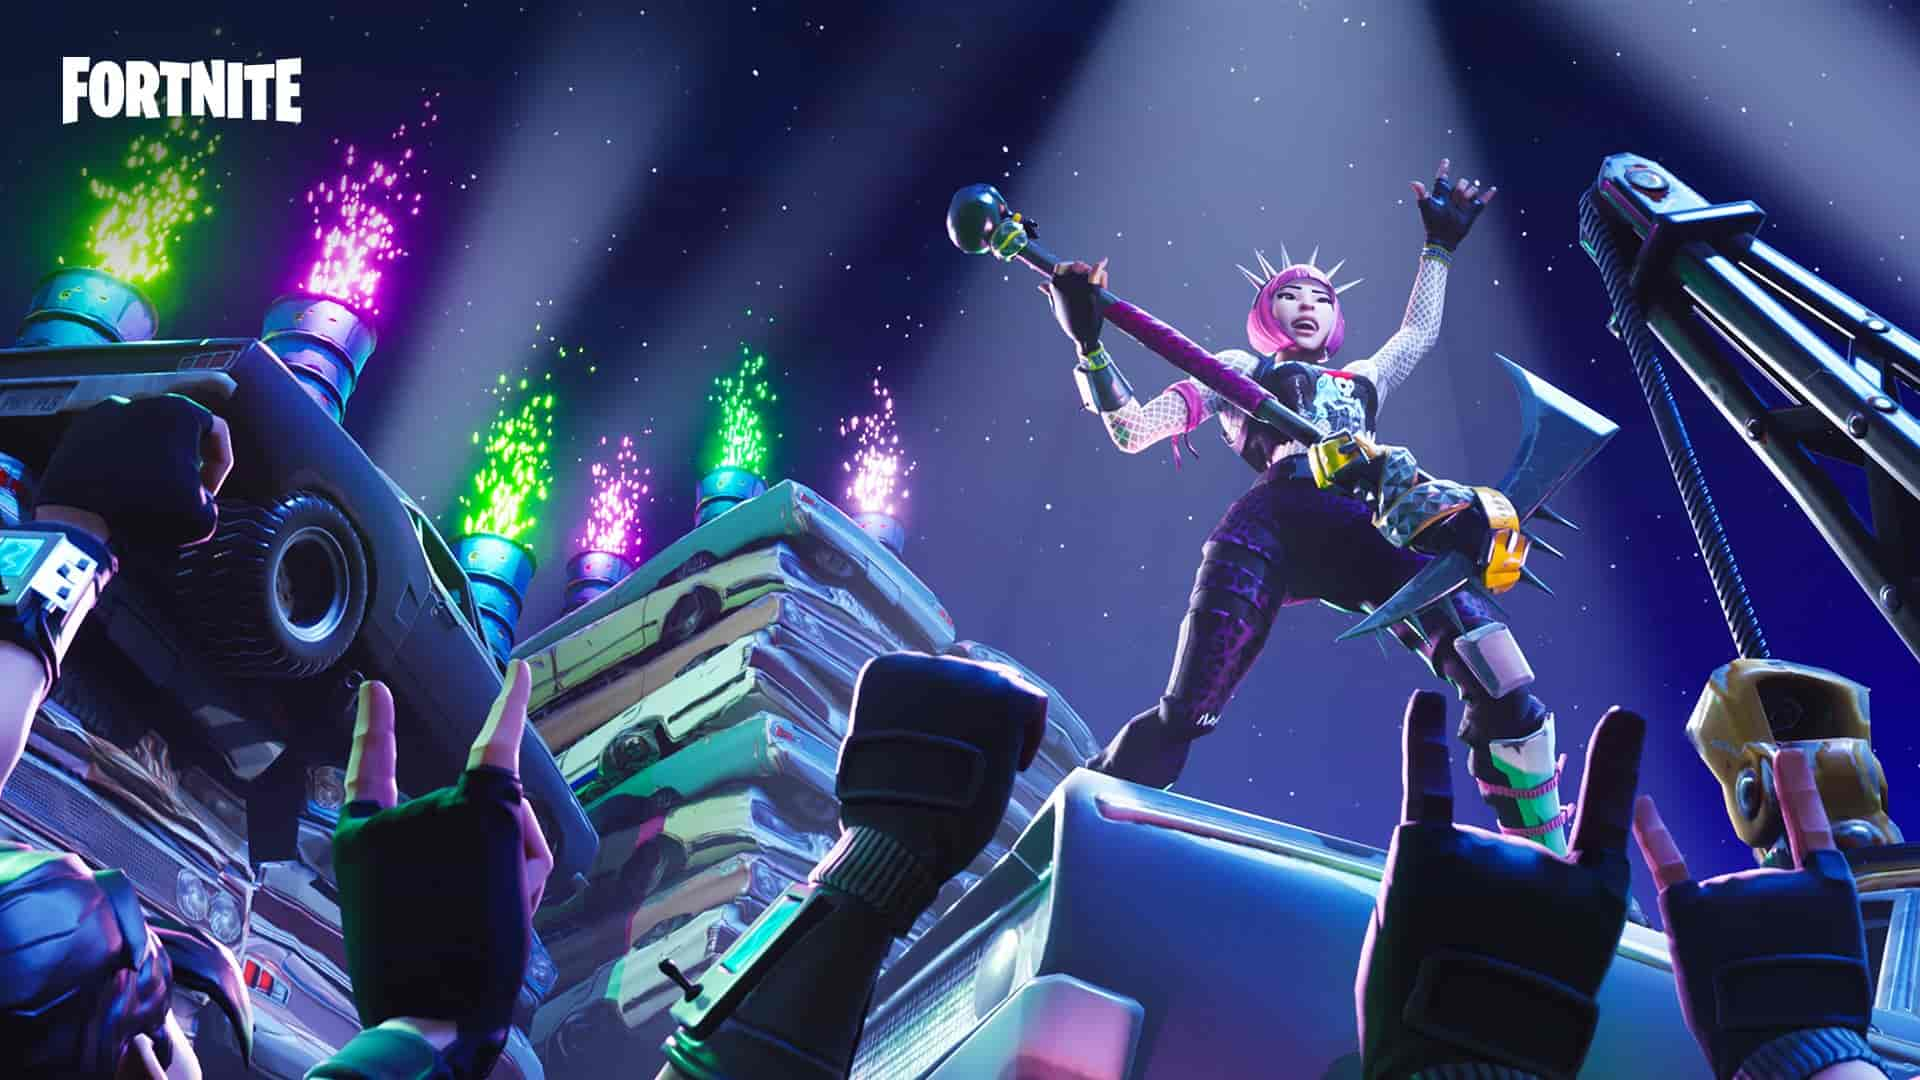 Fortnite China Image Could Tease New Map or Chinese Support